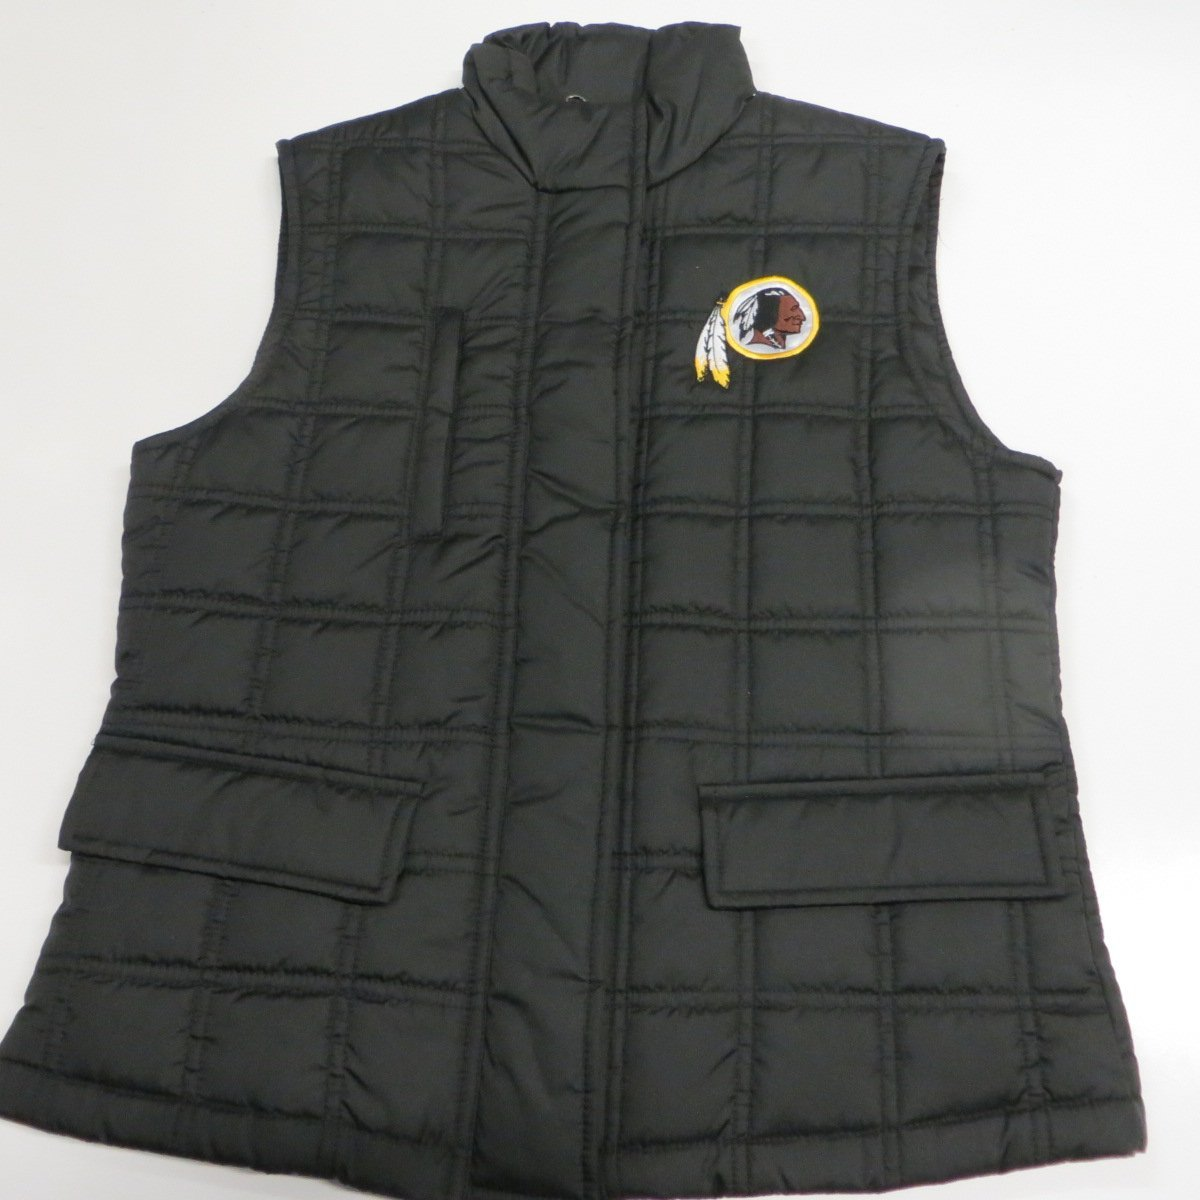 NFL Washington Redskins Womens Medium Full Zip Embroidered Quilted Vest Jacket ARDK 4 M